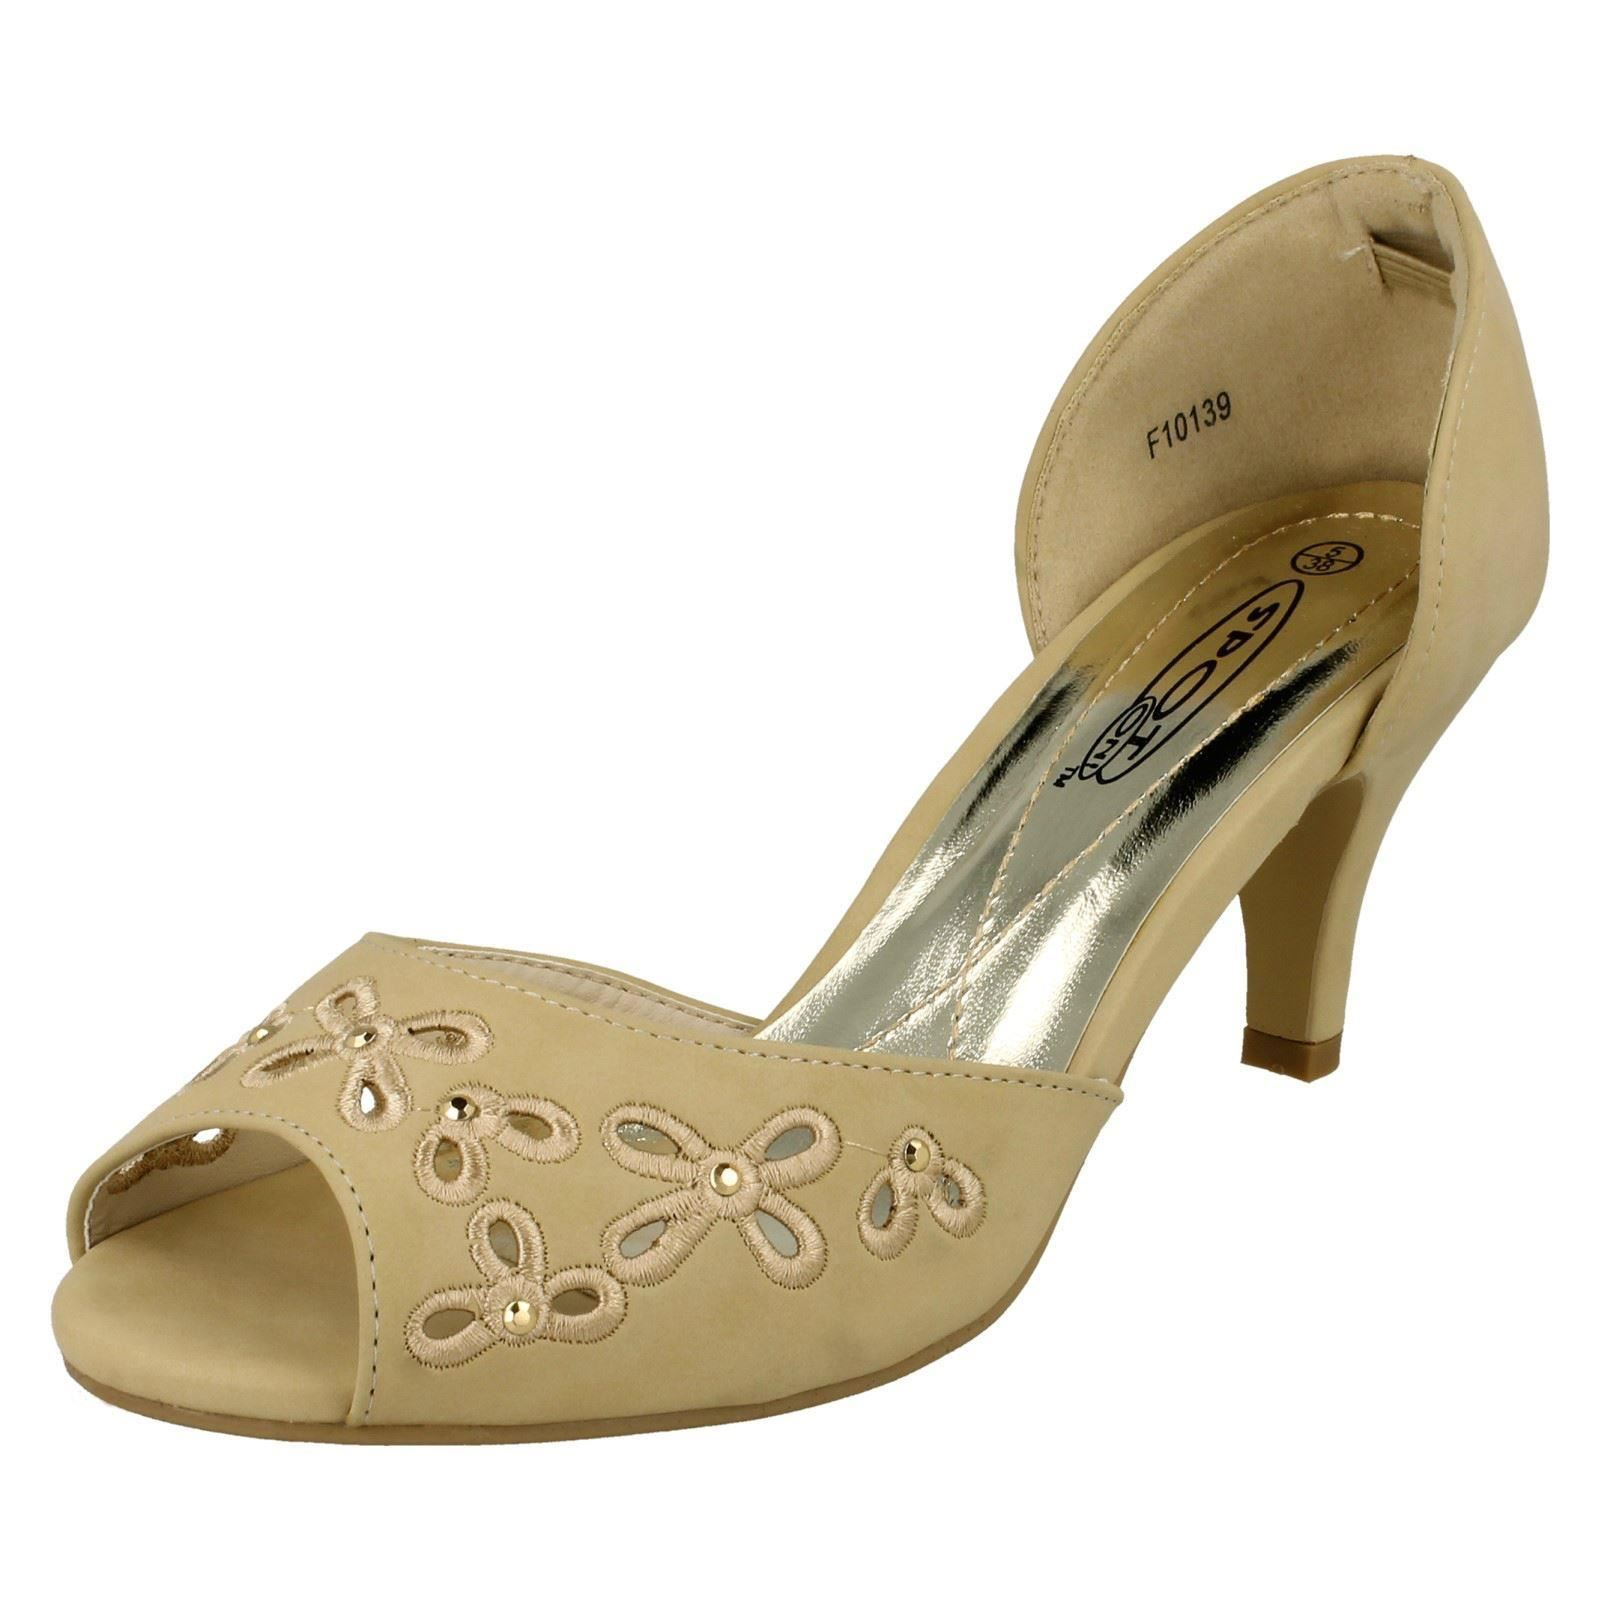 Damas Spot On Sandalias De Estilo F10139